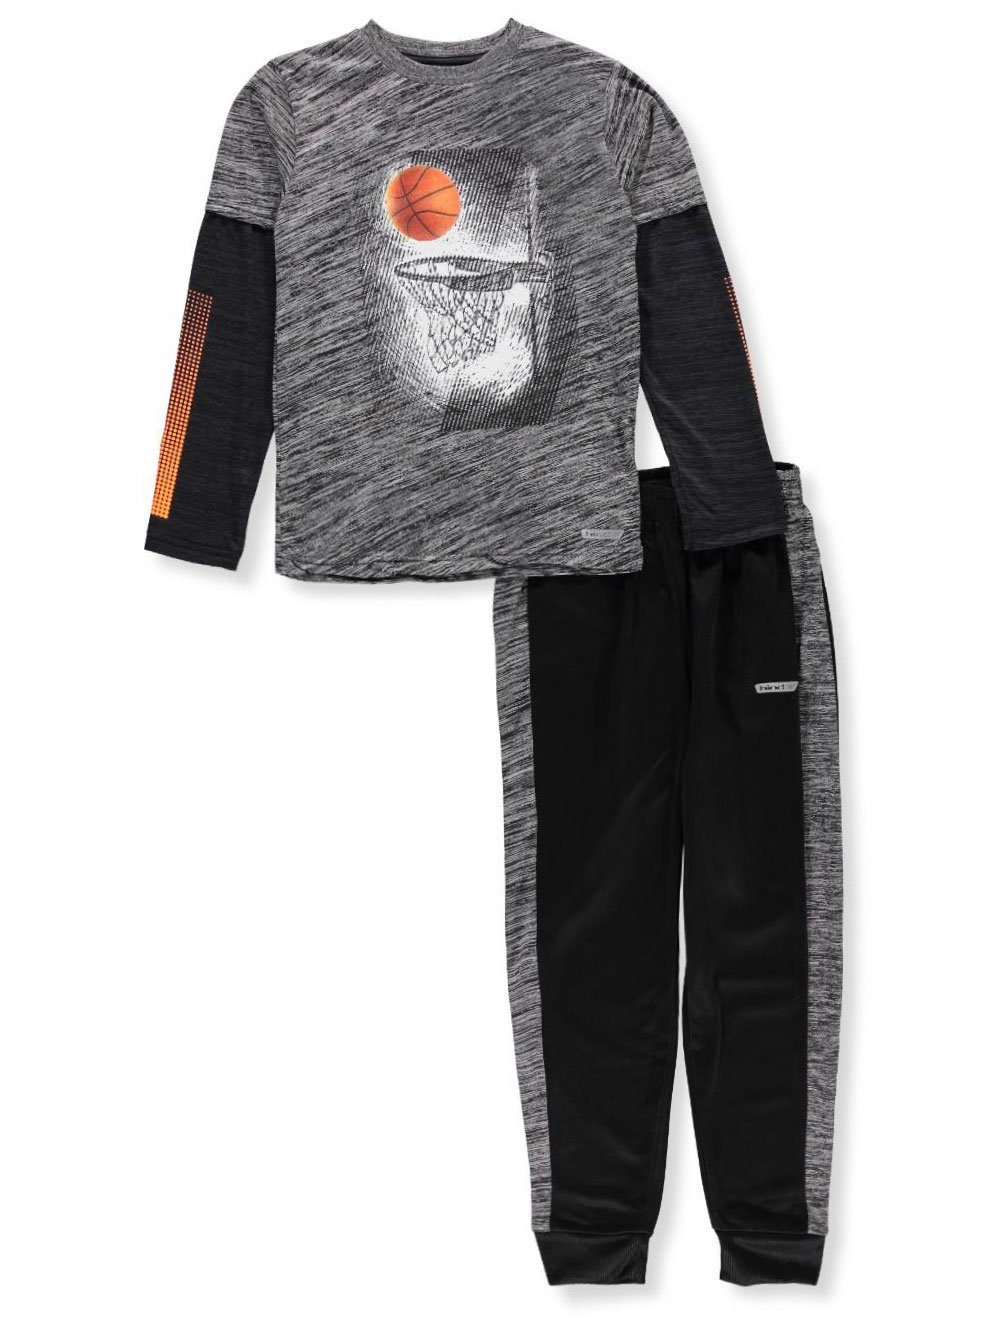 Hind Boys' 2-Piece Pants Set Outfit 12